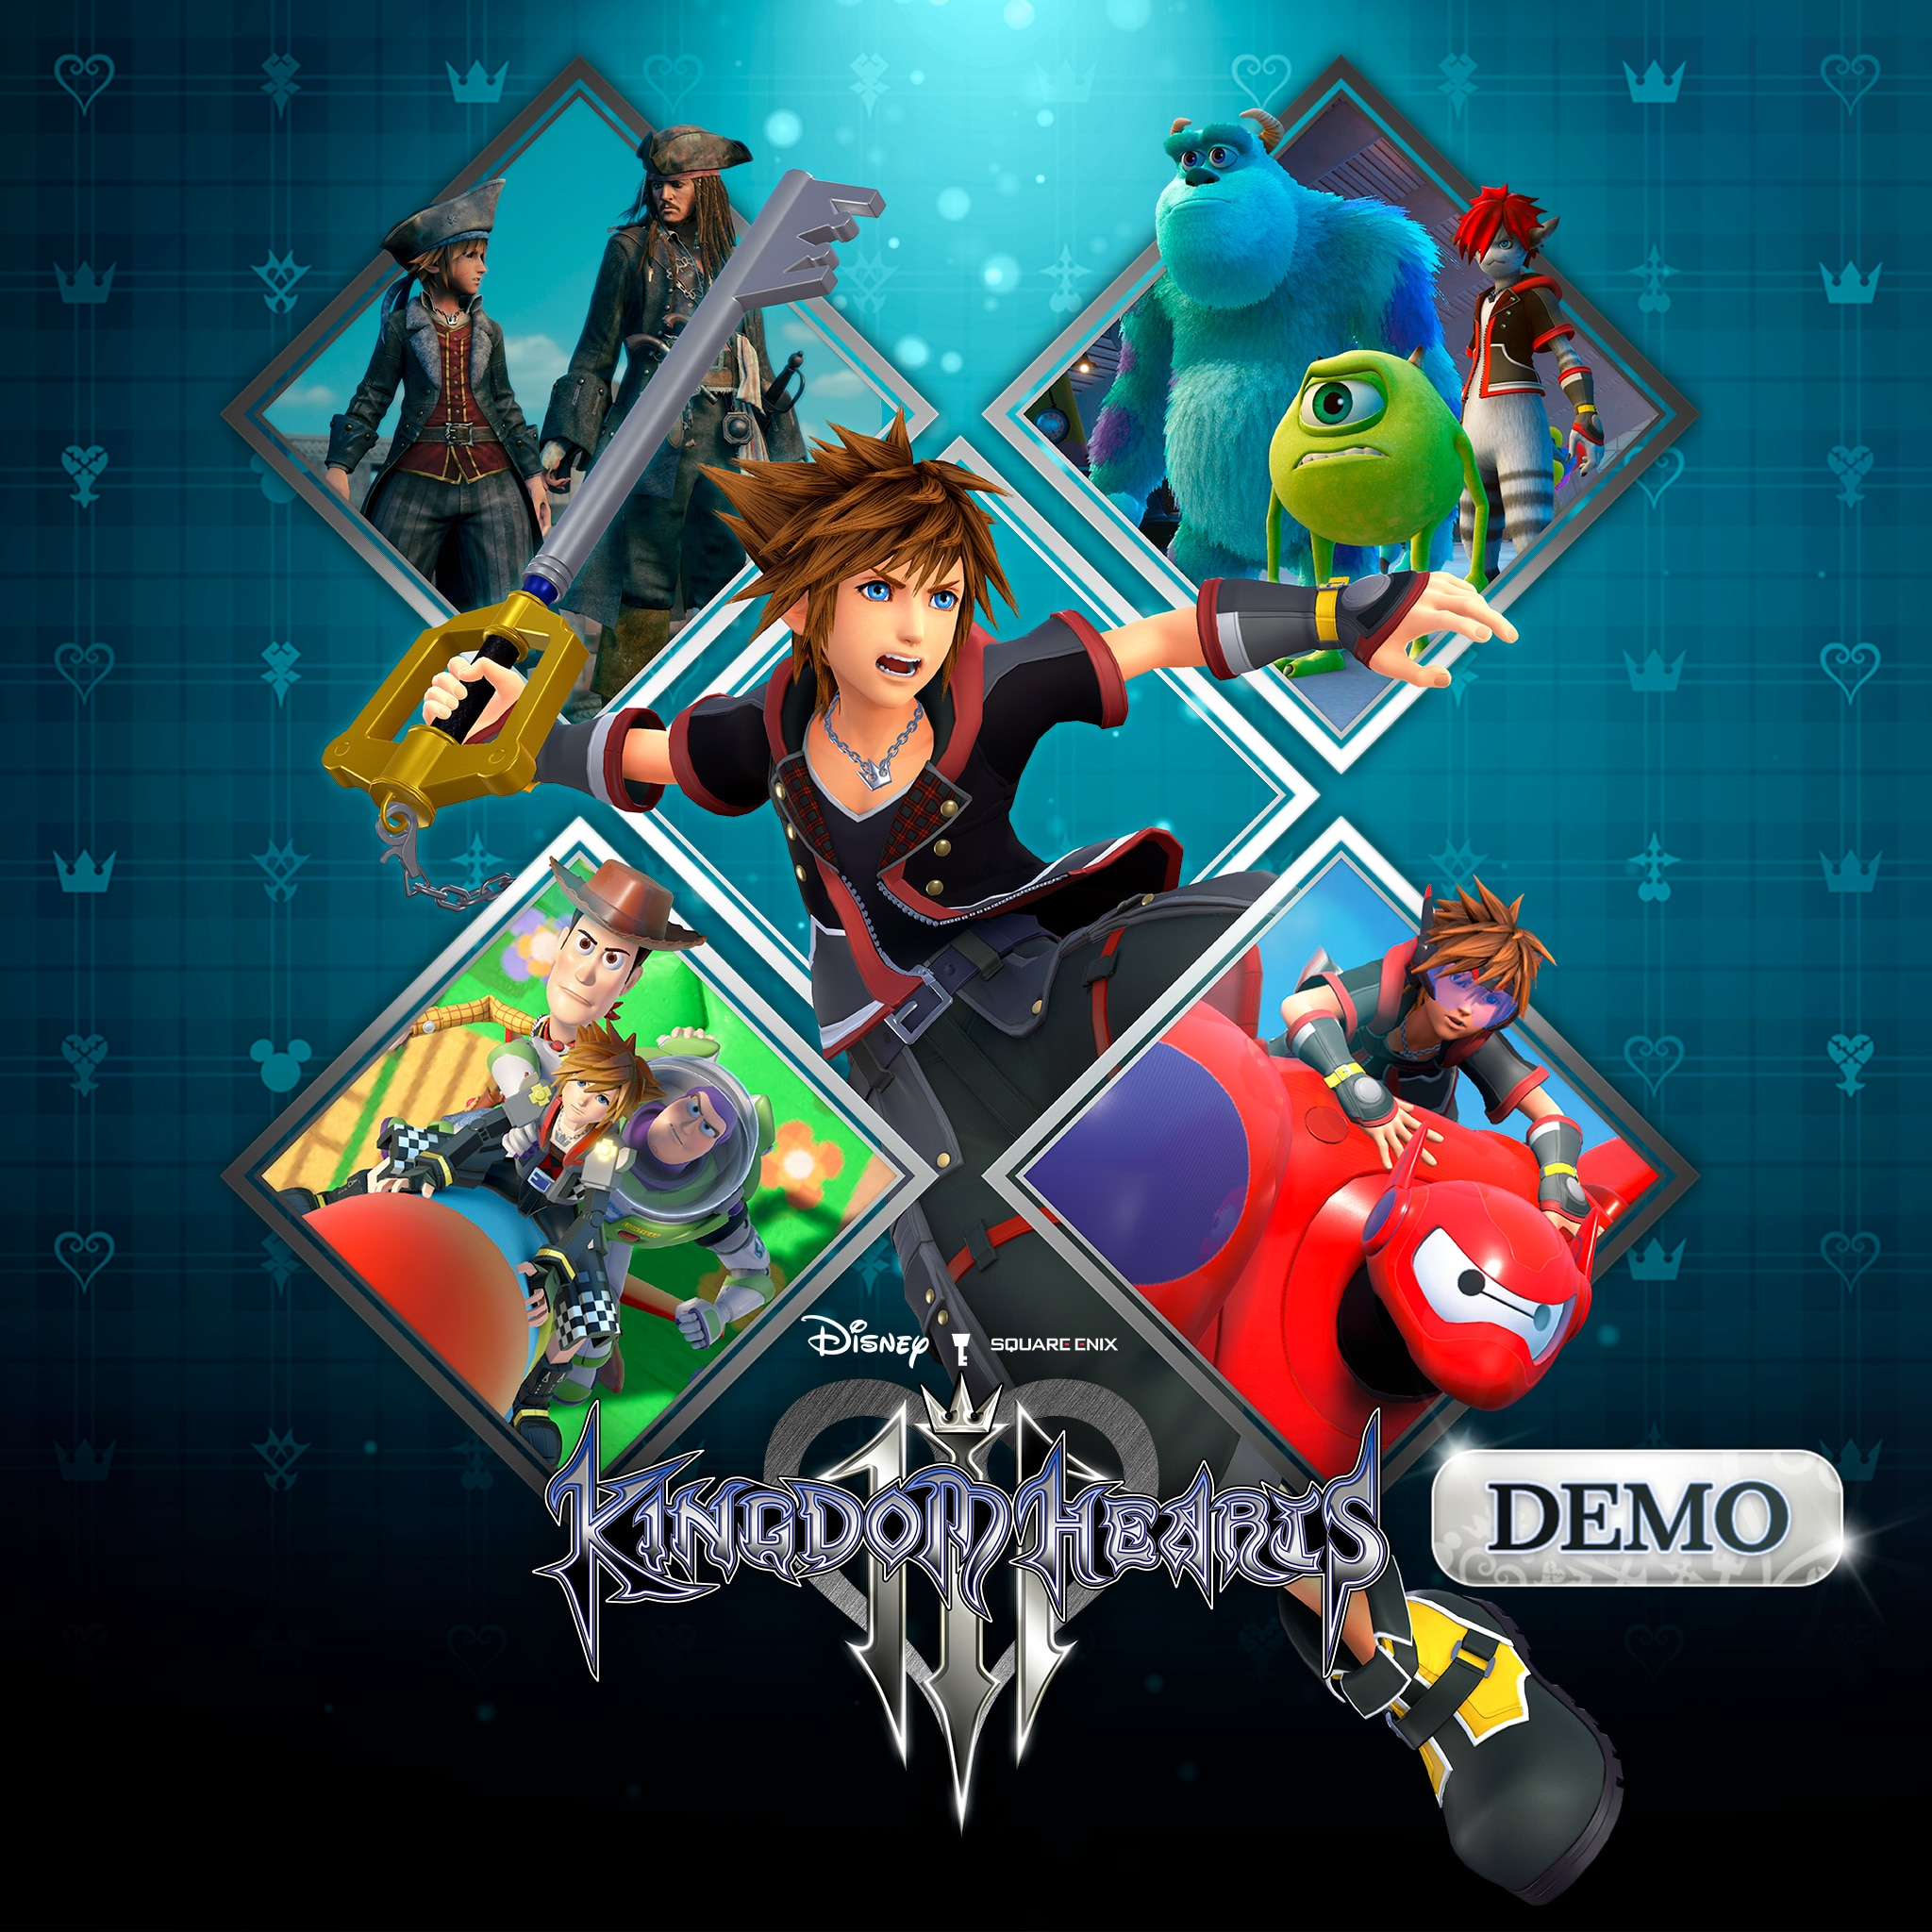 KINGDOM HEARTS III DEMO Version